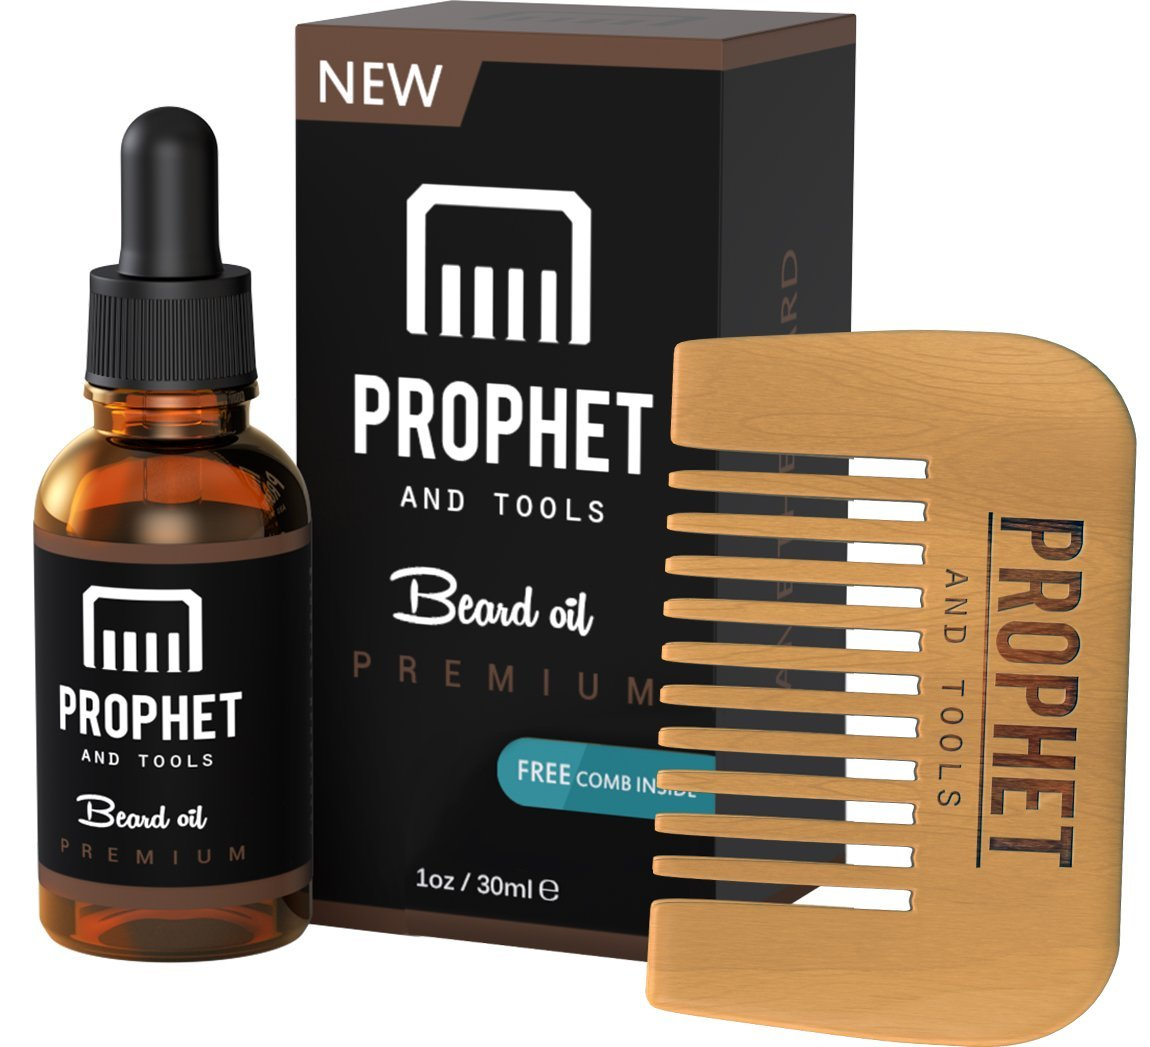 Prophet and Tools Premium Edition Beard Oil Set